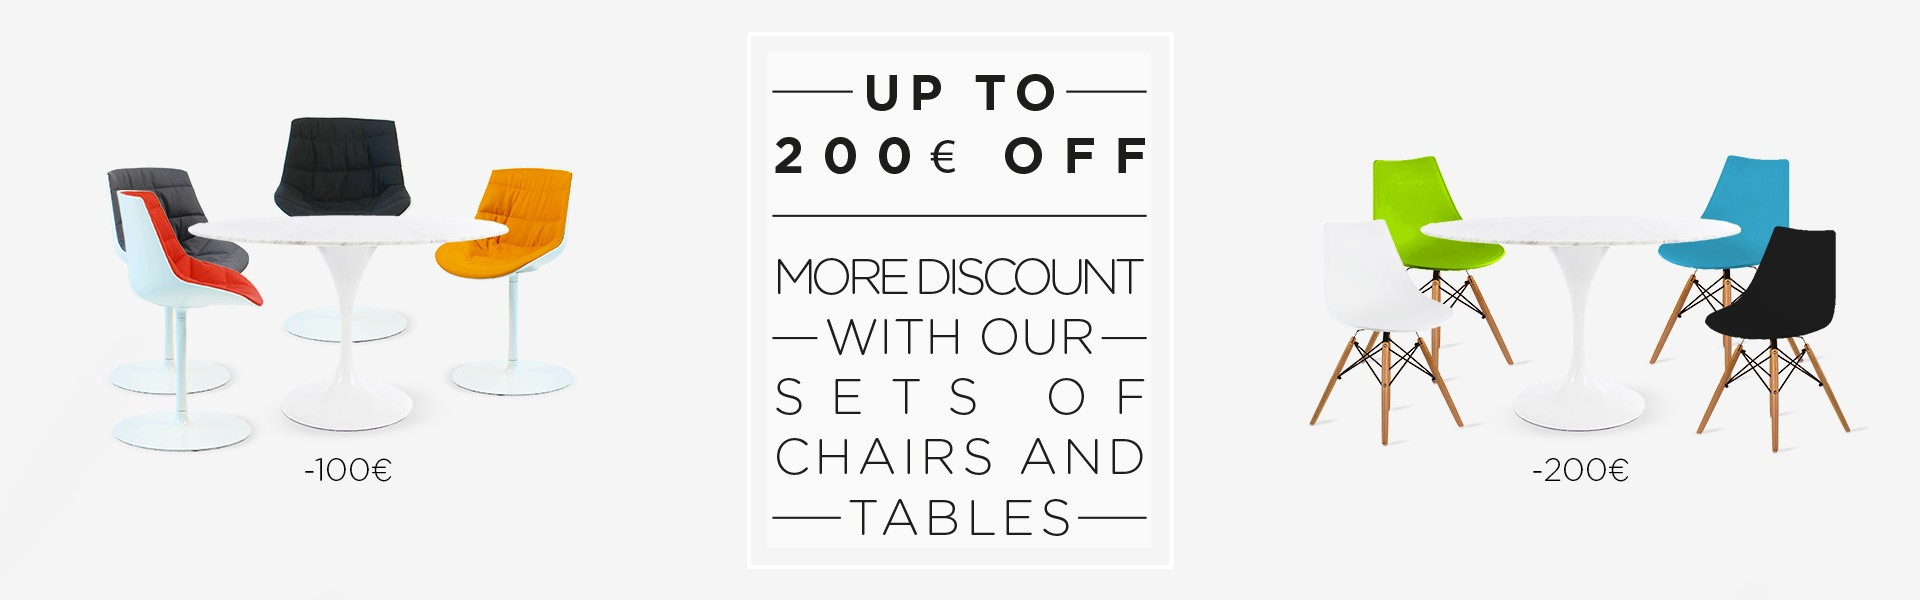 discount set of chairs